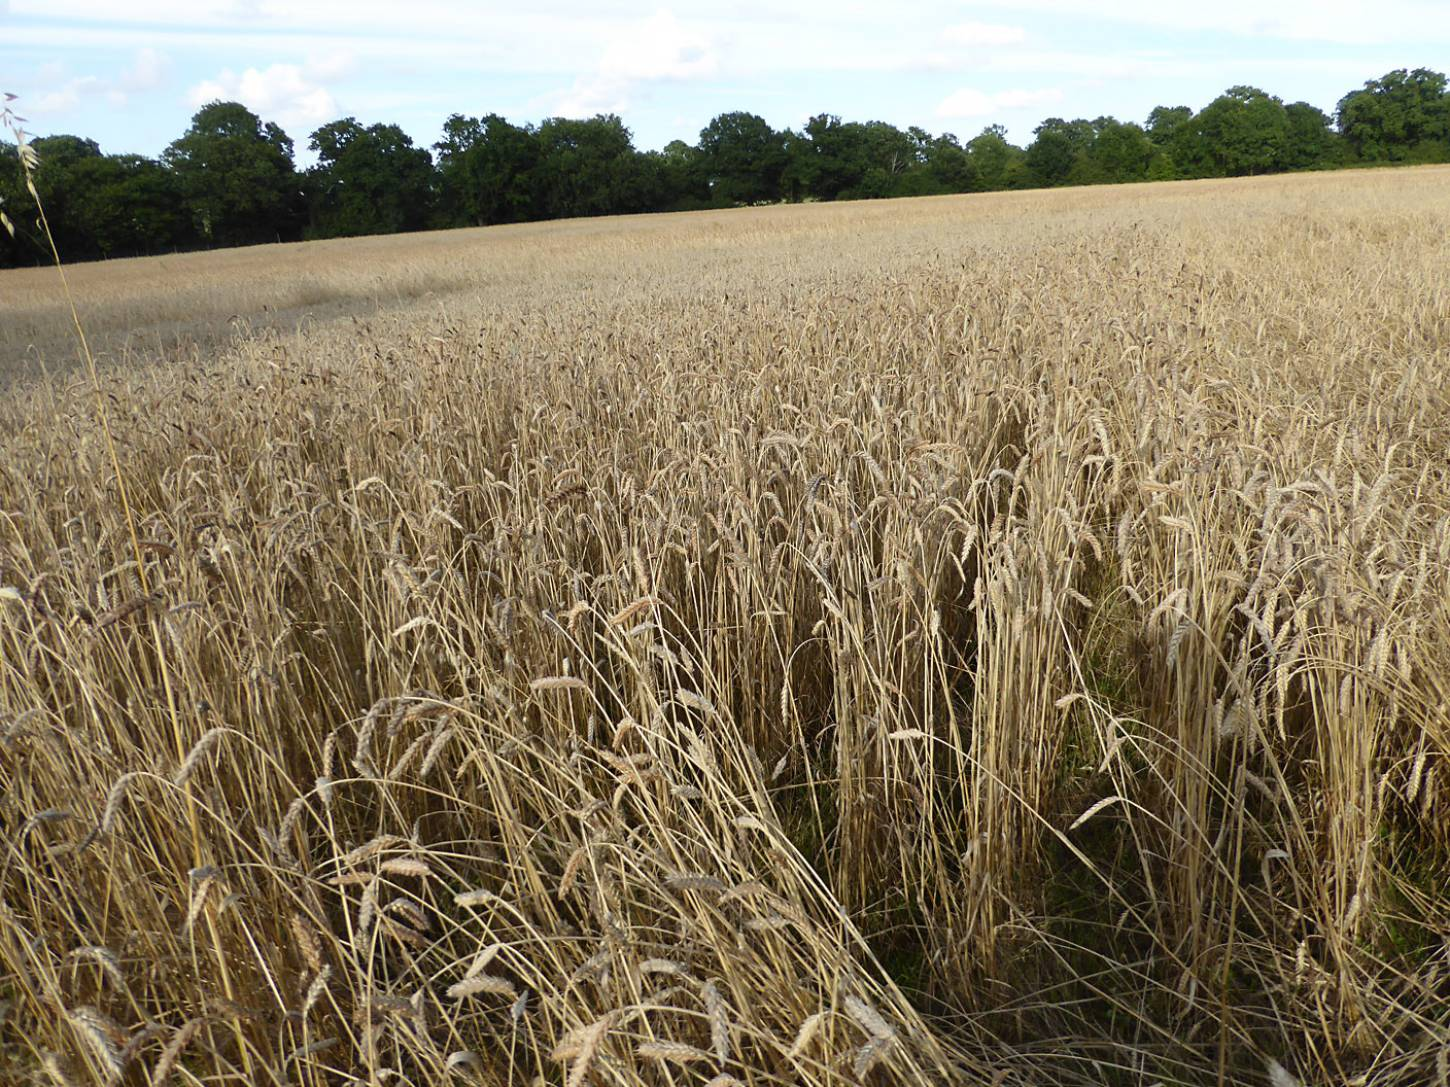 Purple Naked Spelt population, farm review pre-harvest '17 - 6:05pm&nbsp;1<sup>st</sup>&nbsp;Aug.&nbsp;'17  <a href='http://maps.google.com/?t=h&q=51.208325,-0.086786&z=18&output=embed' target=_blank><img src='http://www.brockwell-bake.org.uk/img/marker.png' style='border:none;vertical-align:top' height=16px></a>